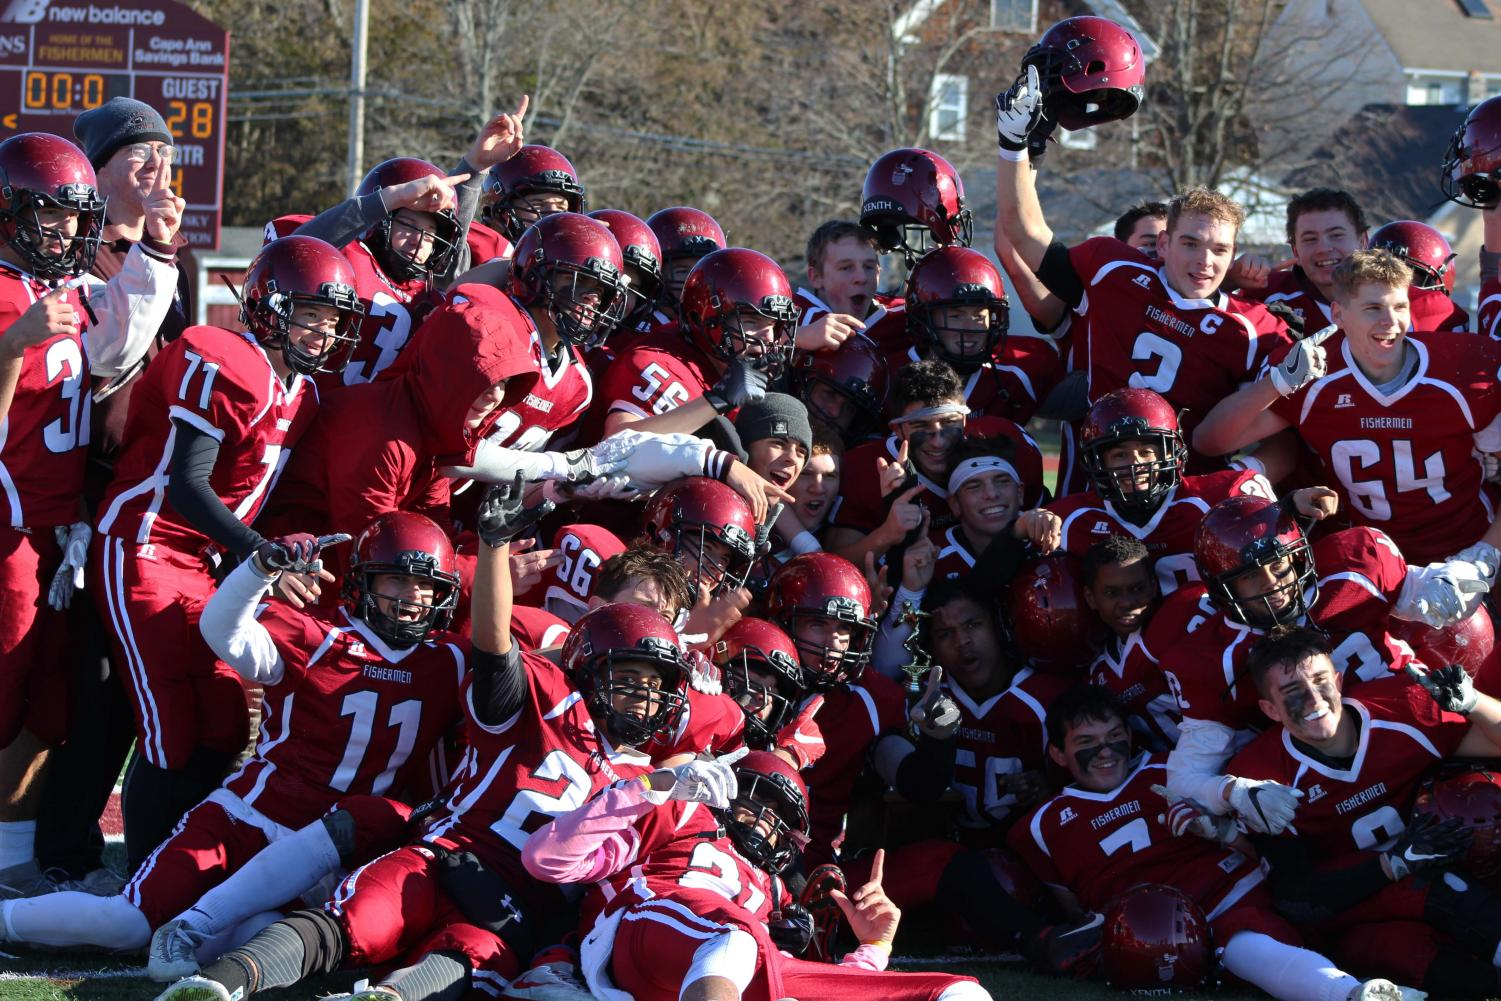 The GHS football team won their annual Thanksgiving game against the Danvers Falcons on November 23